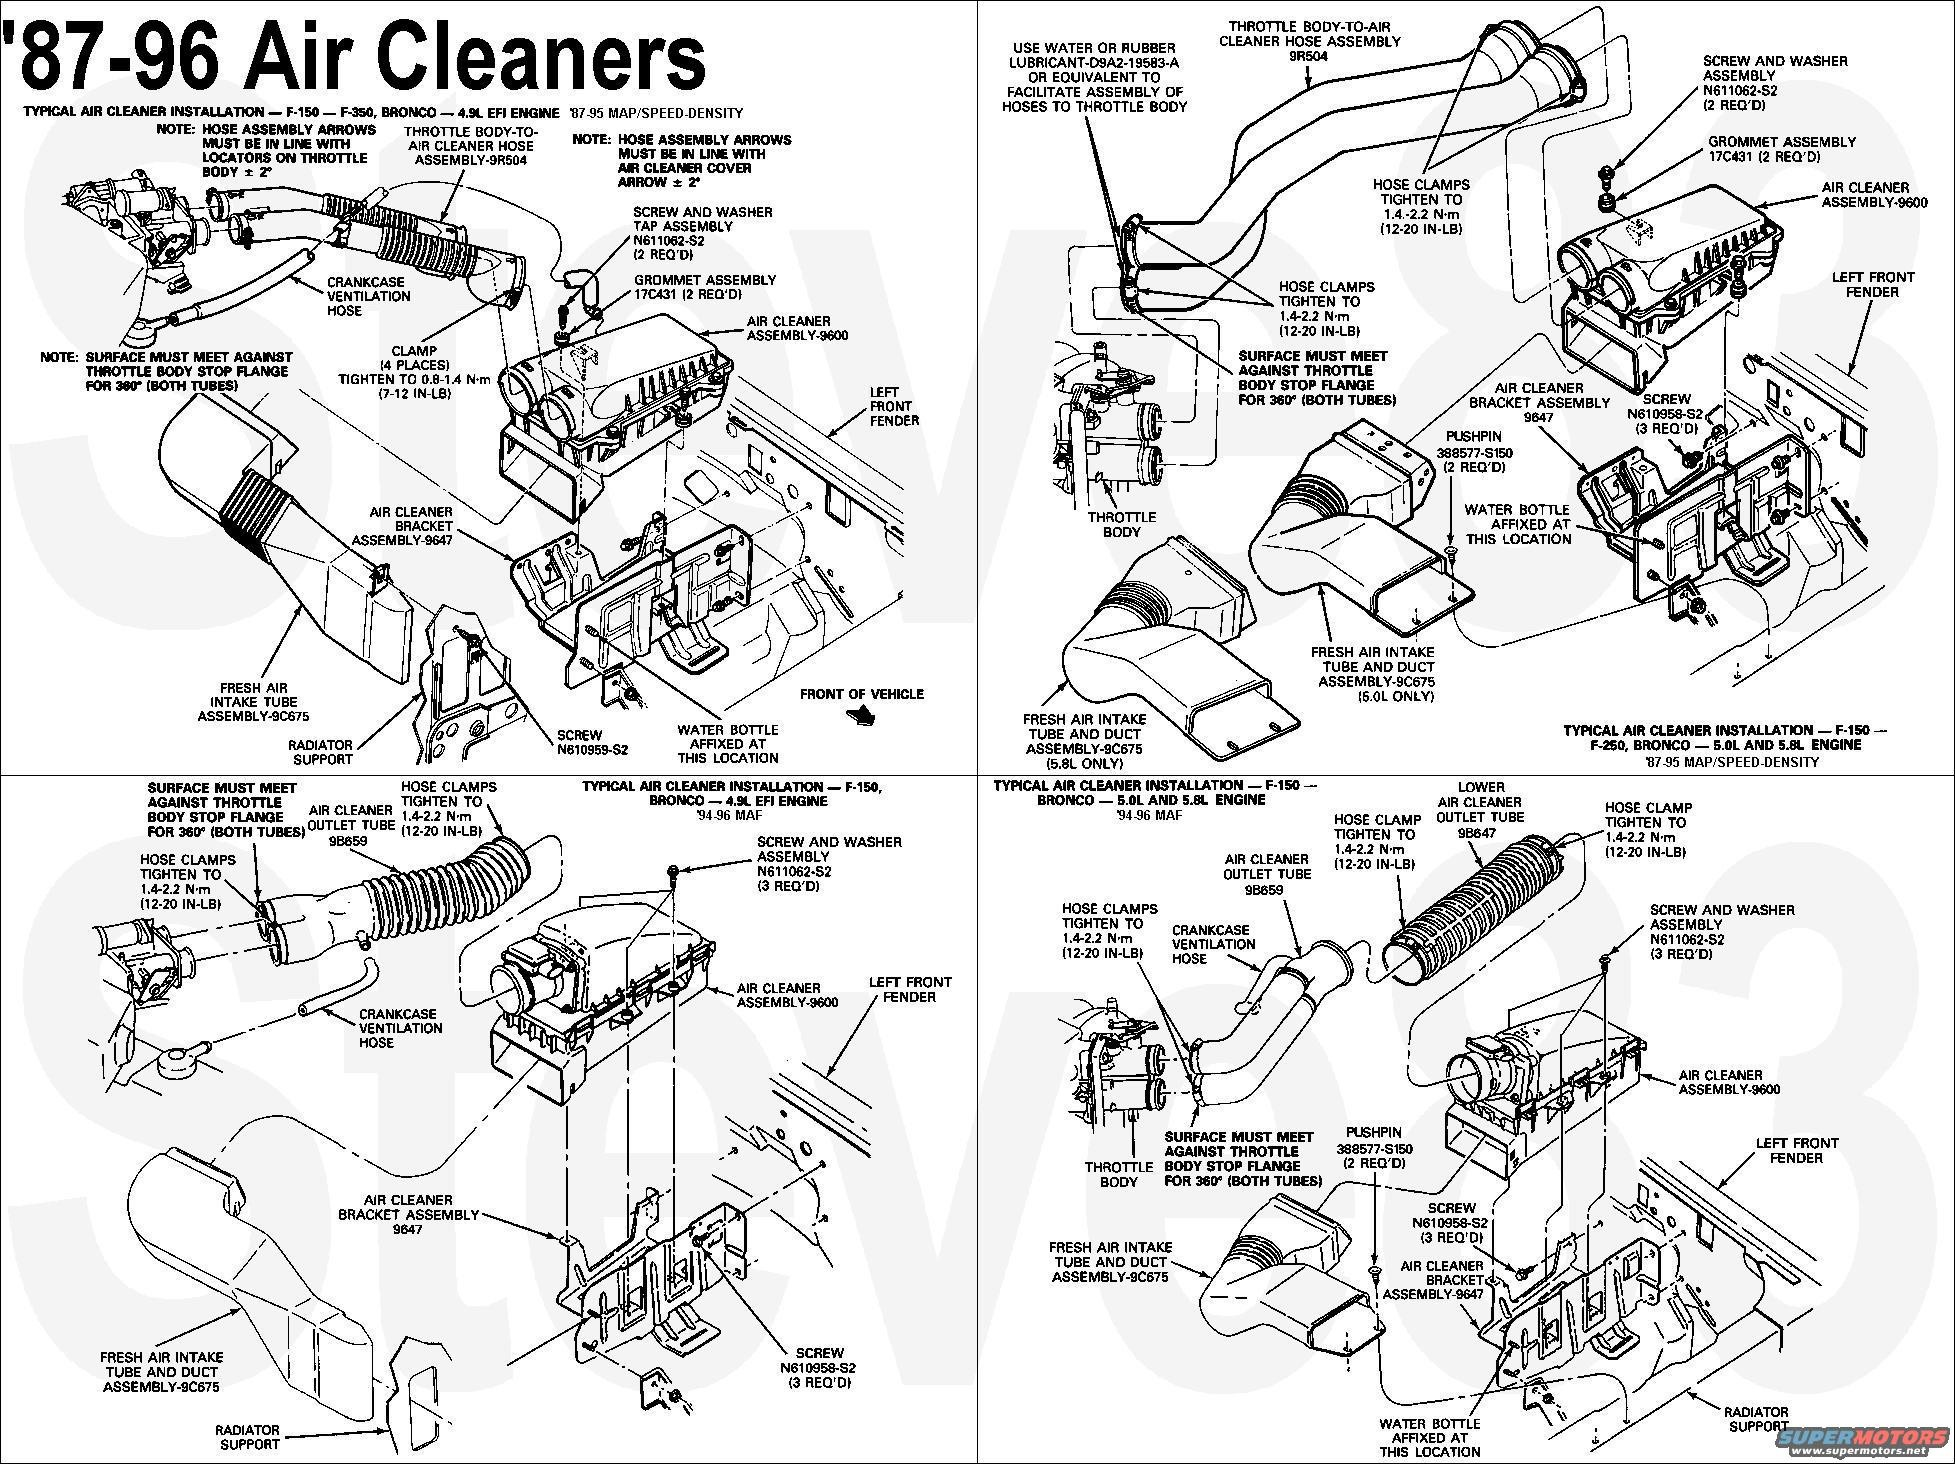 Vacuum Hose Routing Diagram 1986 ford F150 Engine Sporadically Sputtering Hesitating Chugging ford Of Vacuum Hose Routing Diagram 1986 ford F150